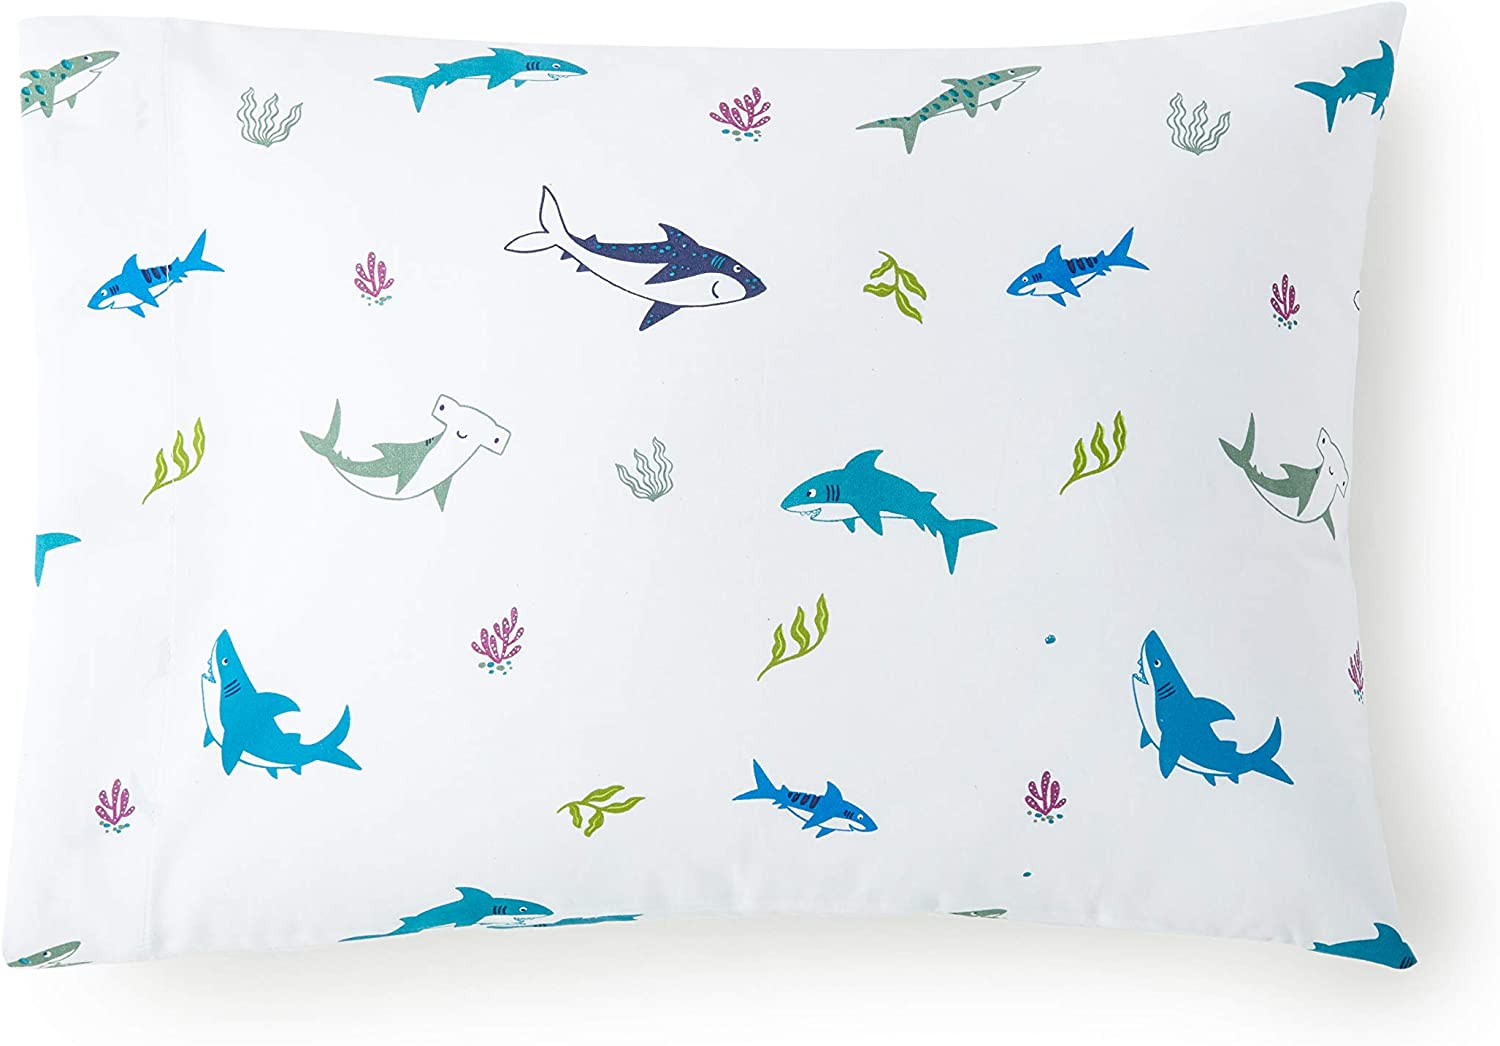 Wildkin 100/% Cotton 7 Pc Full Bed-in-A-Bag,Includes Comforter,Flat Sheet,Fitted Sheet,Two Pillowcases and Two Embroidered Shams Olive Kids BPA-Free Shark Attack Certified Oeko-TEX Standard 100